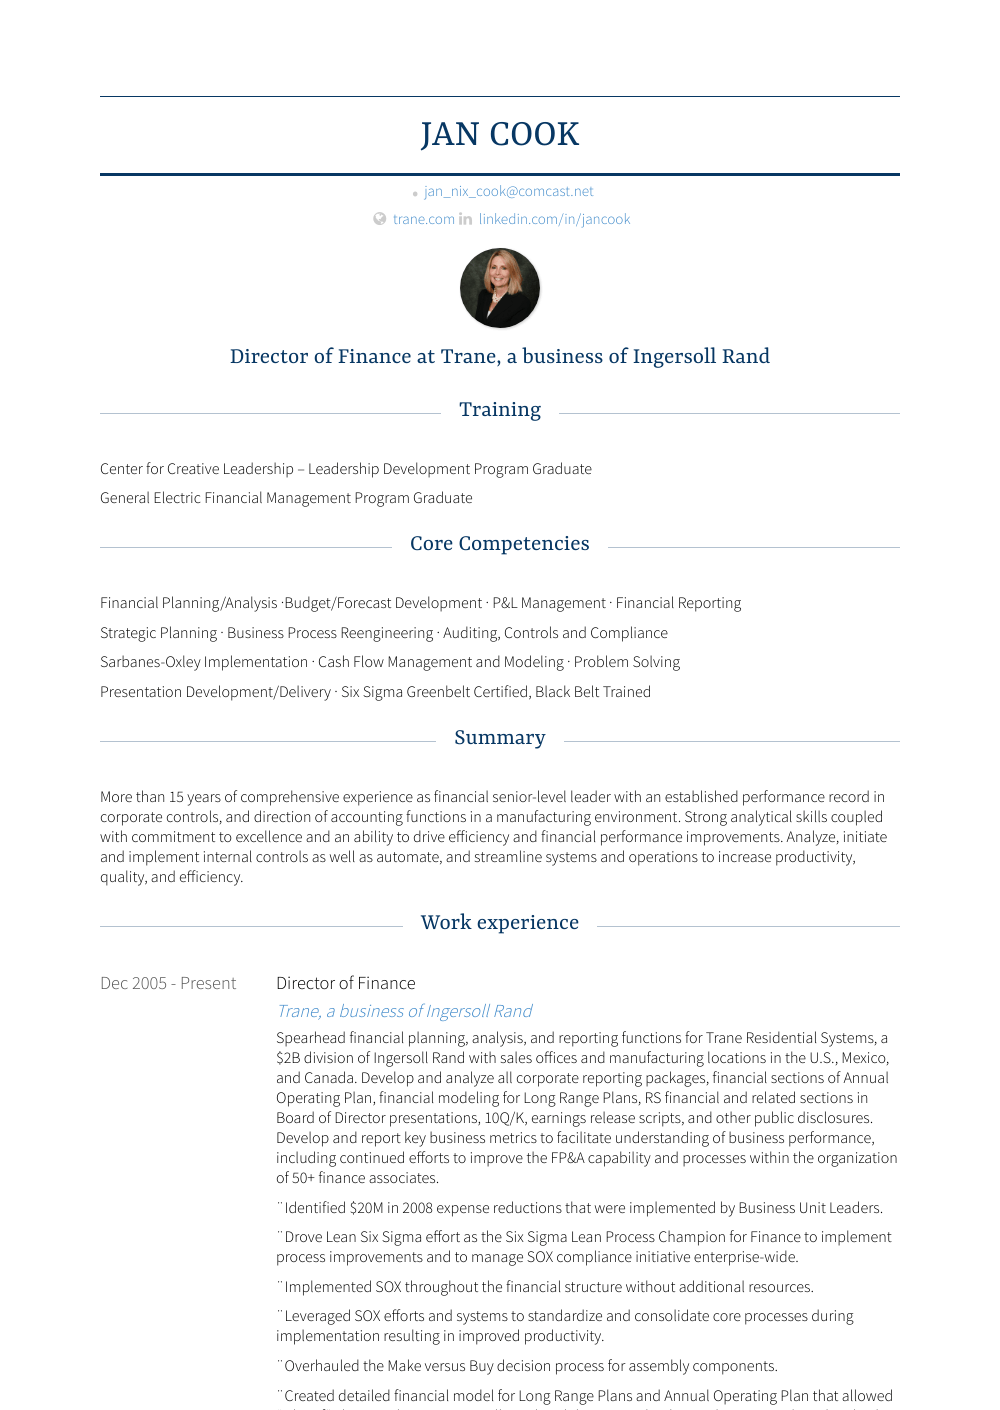 Director Of Finance - Resume Samples and Templates | VisualCV